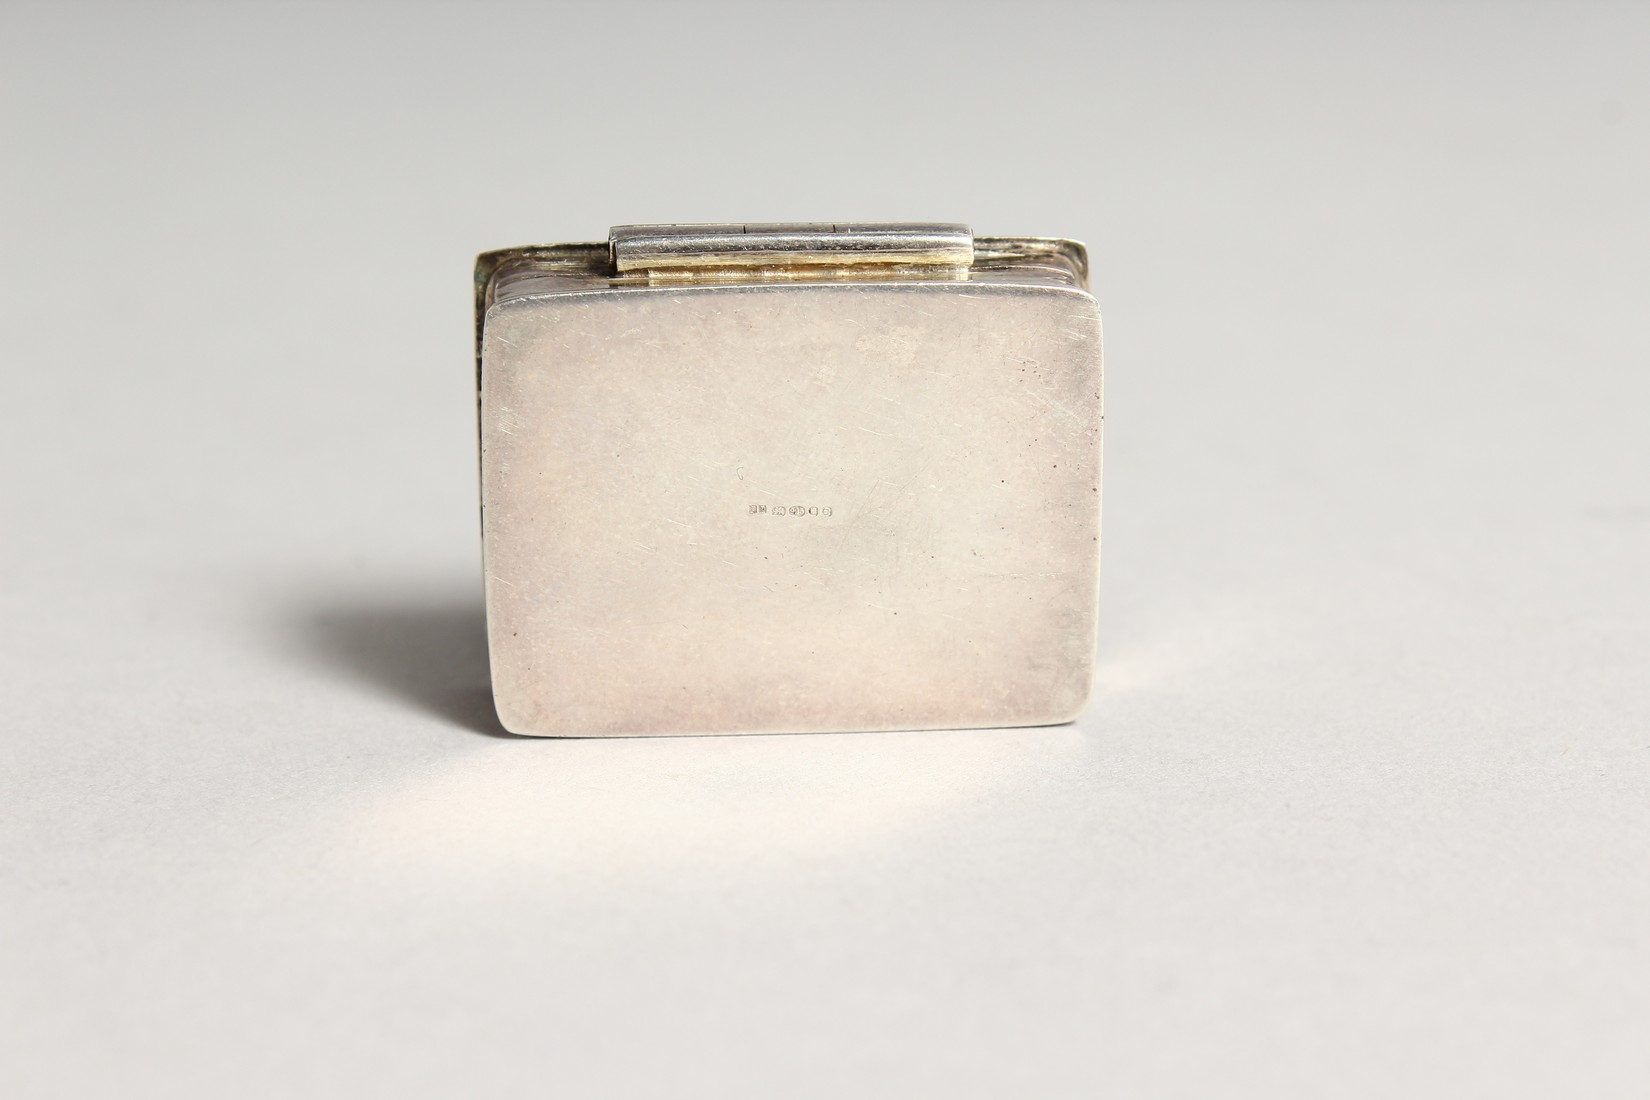 A SILVER AND ENAMEL SNUFF BOX, the lid decorated with figures on horseback. 1.5ins wide - Image 4 of 6